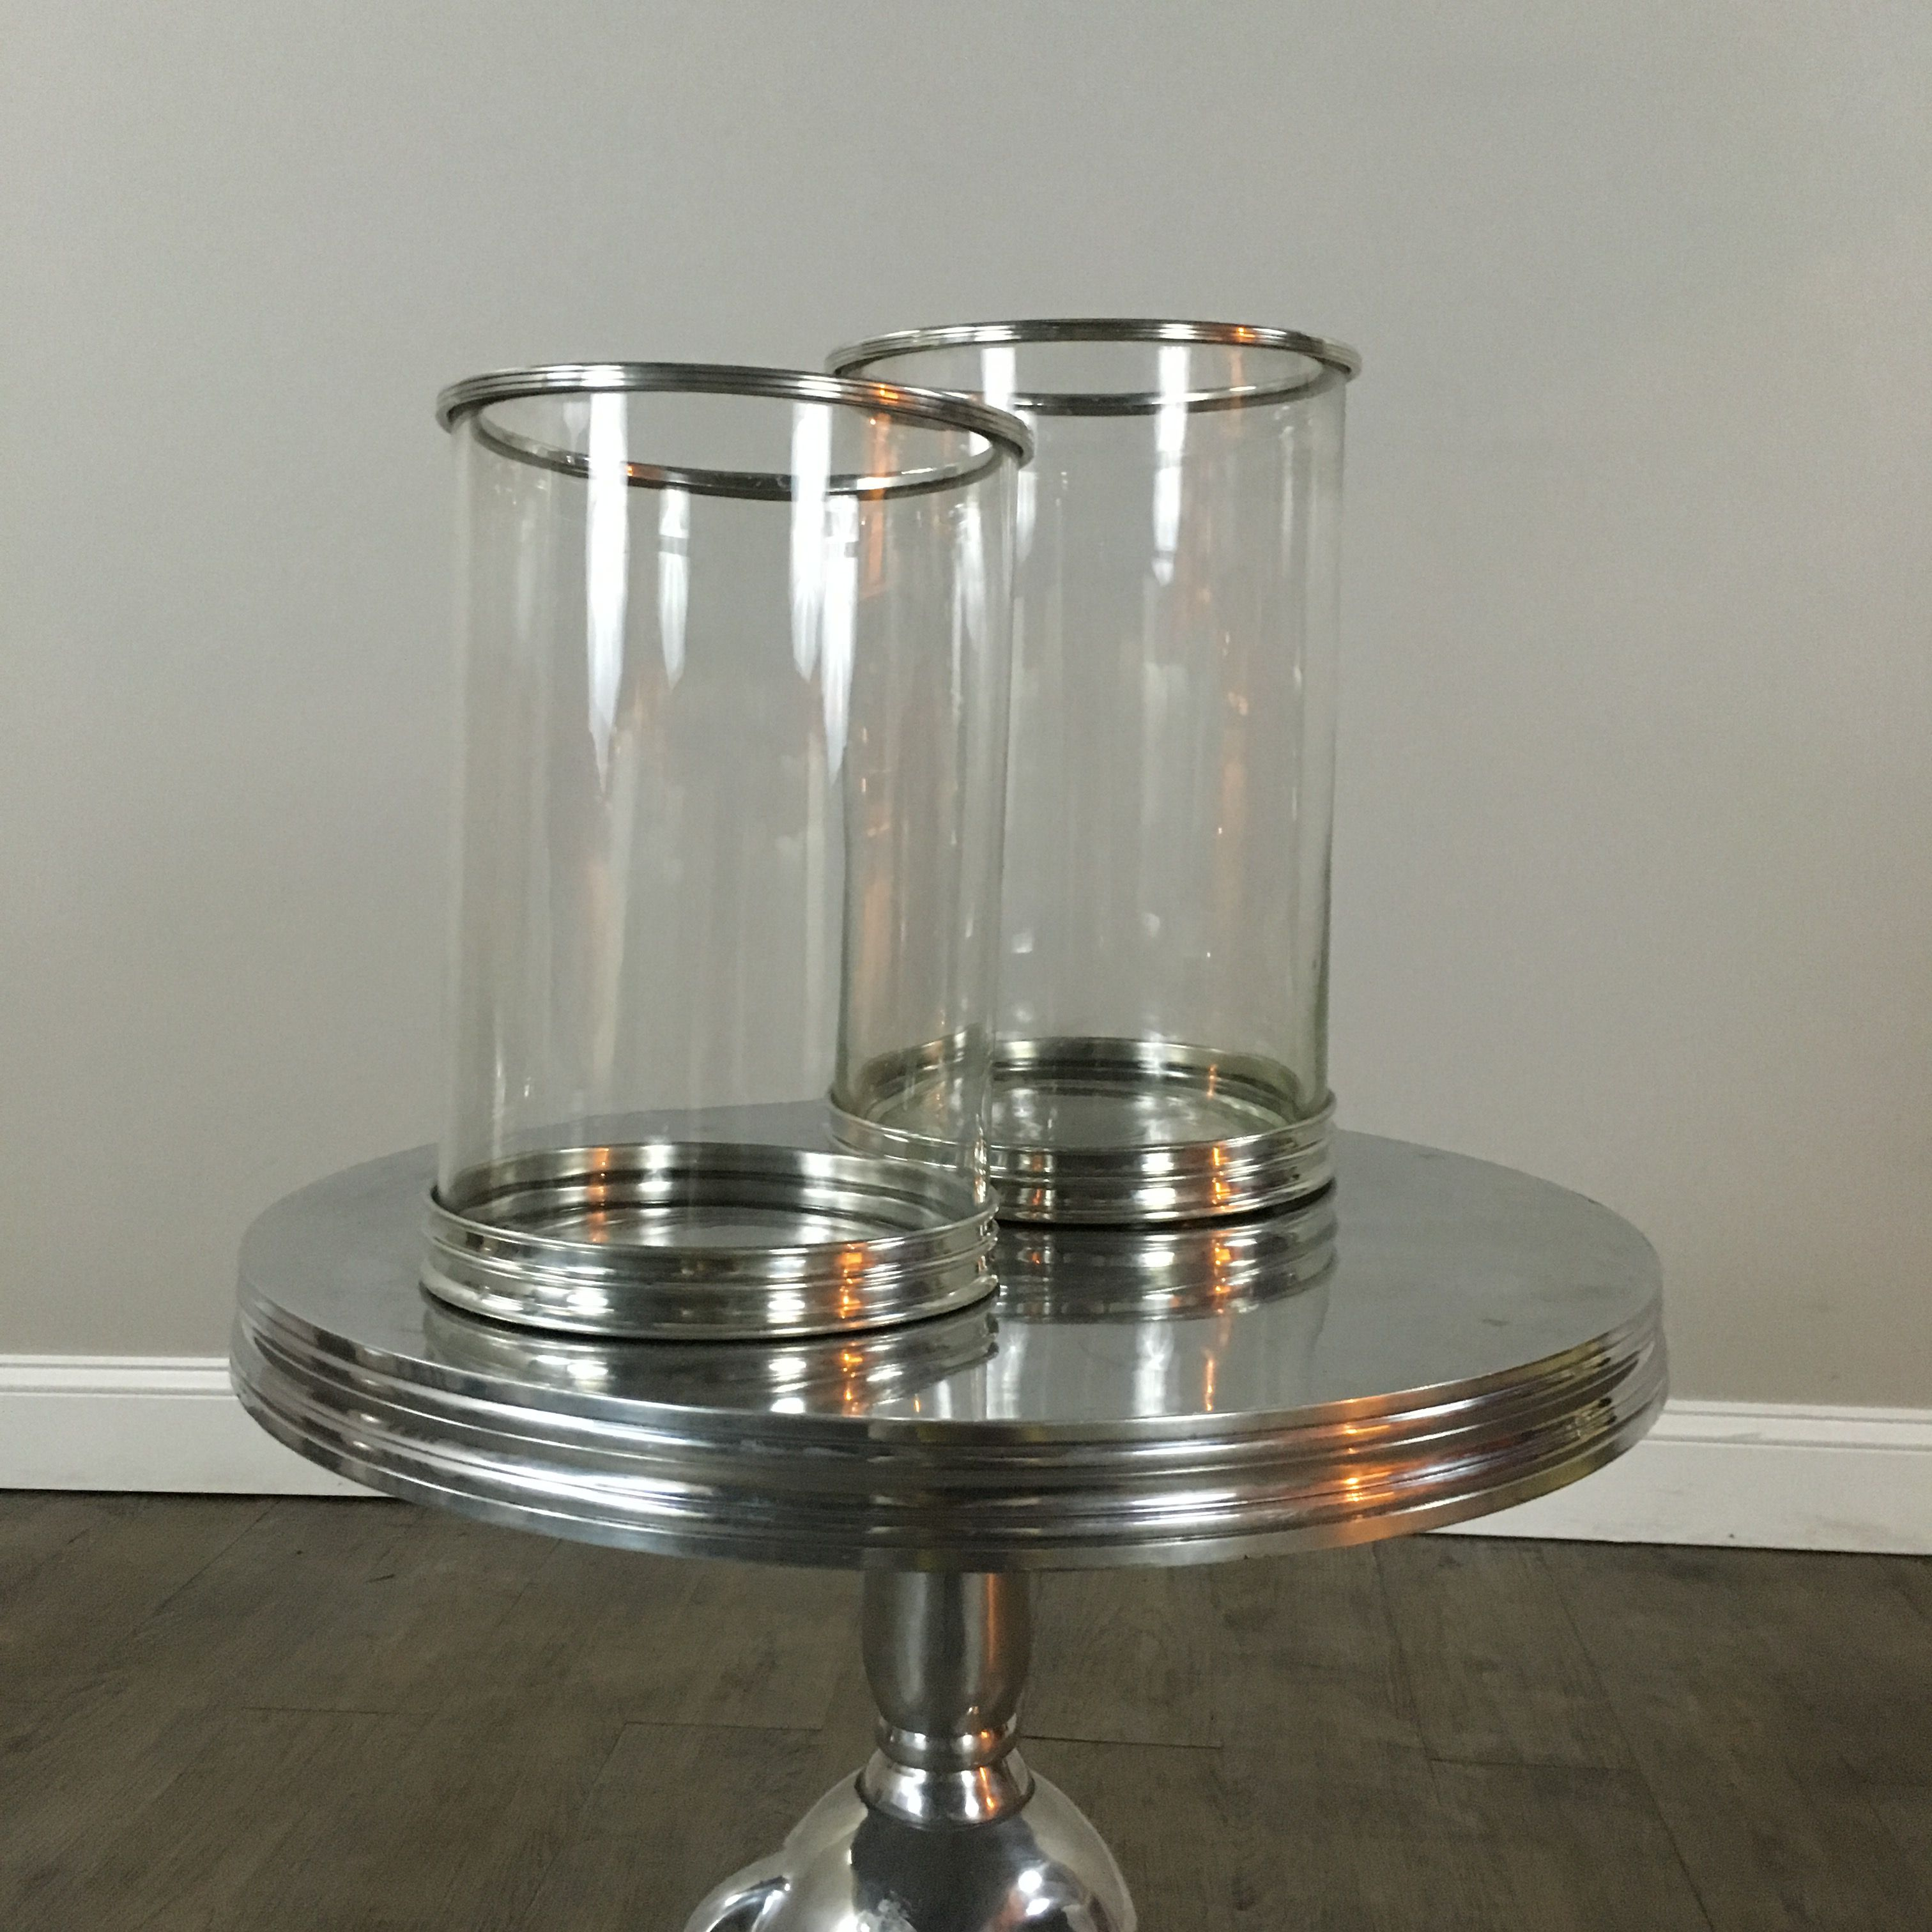 Two Large Hurricane Lamps William Sonoma Hurricane Lamps Lamp Local Furniture